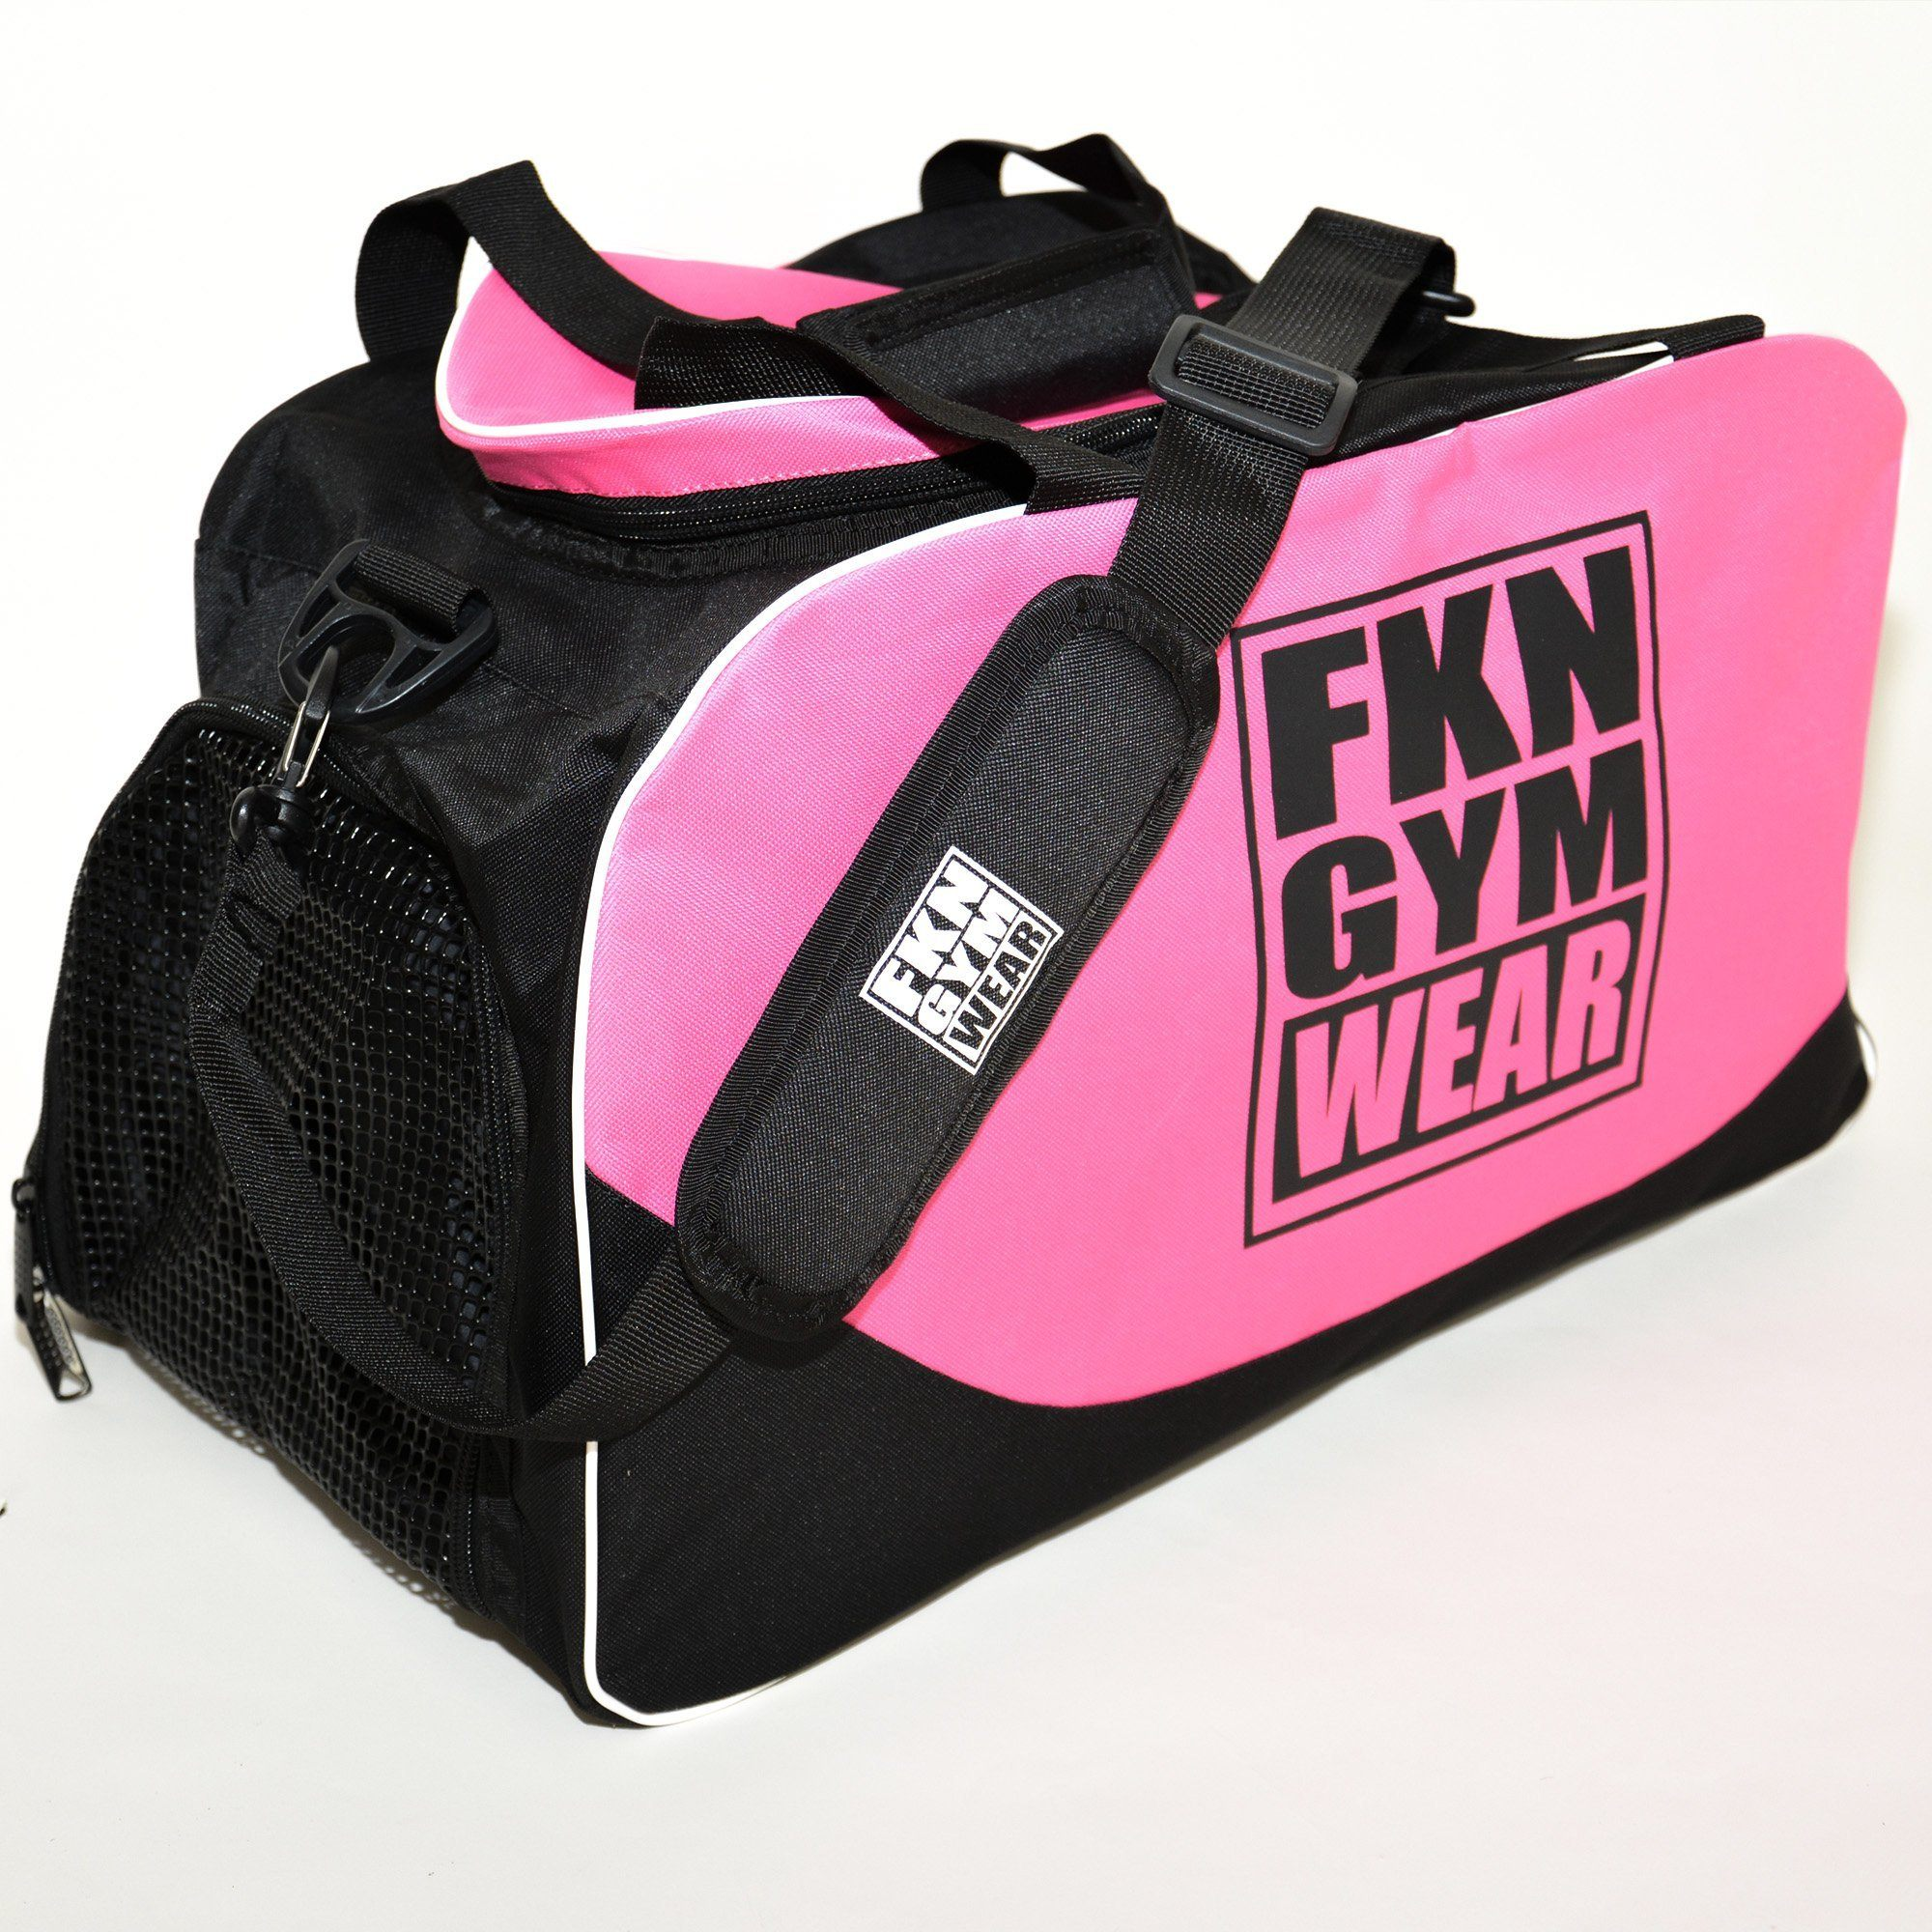 FKN Gym Wear Gym Bag - Pink